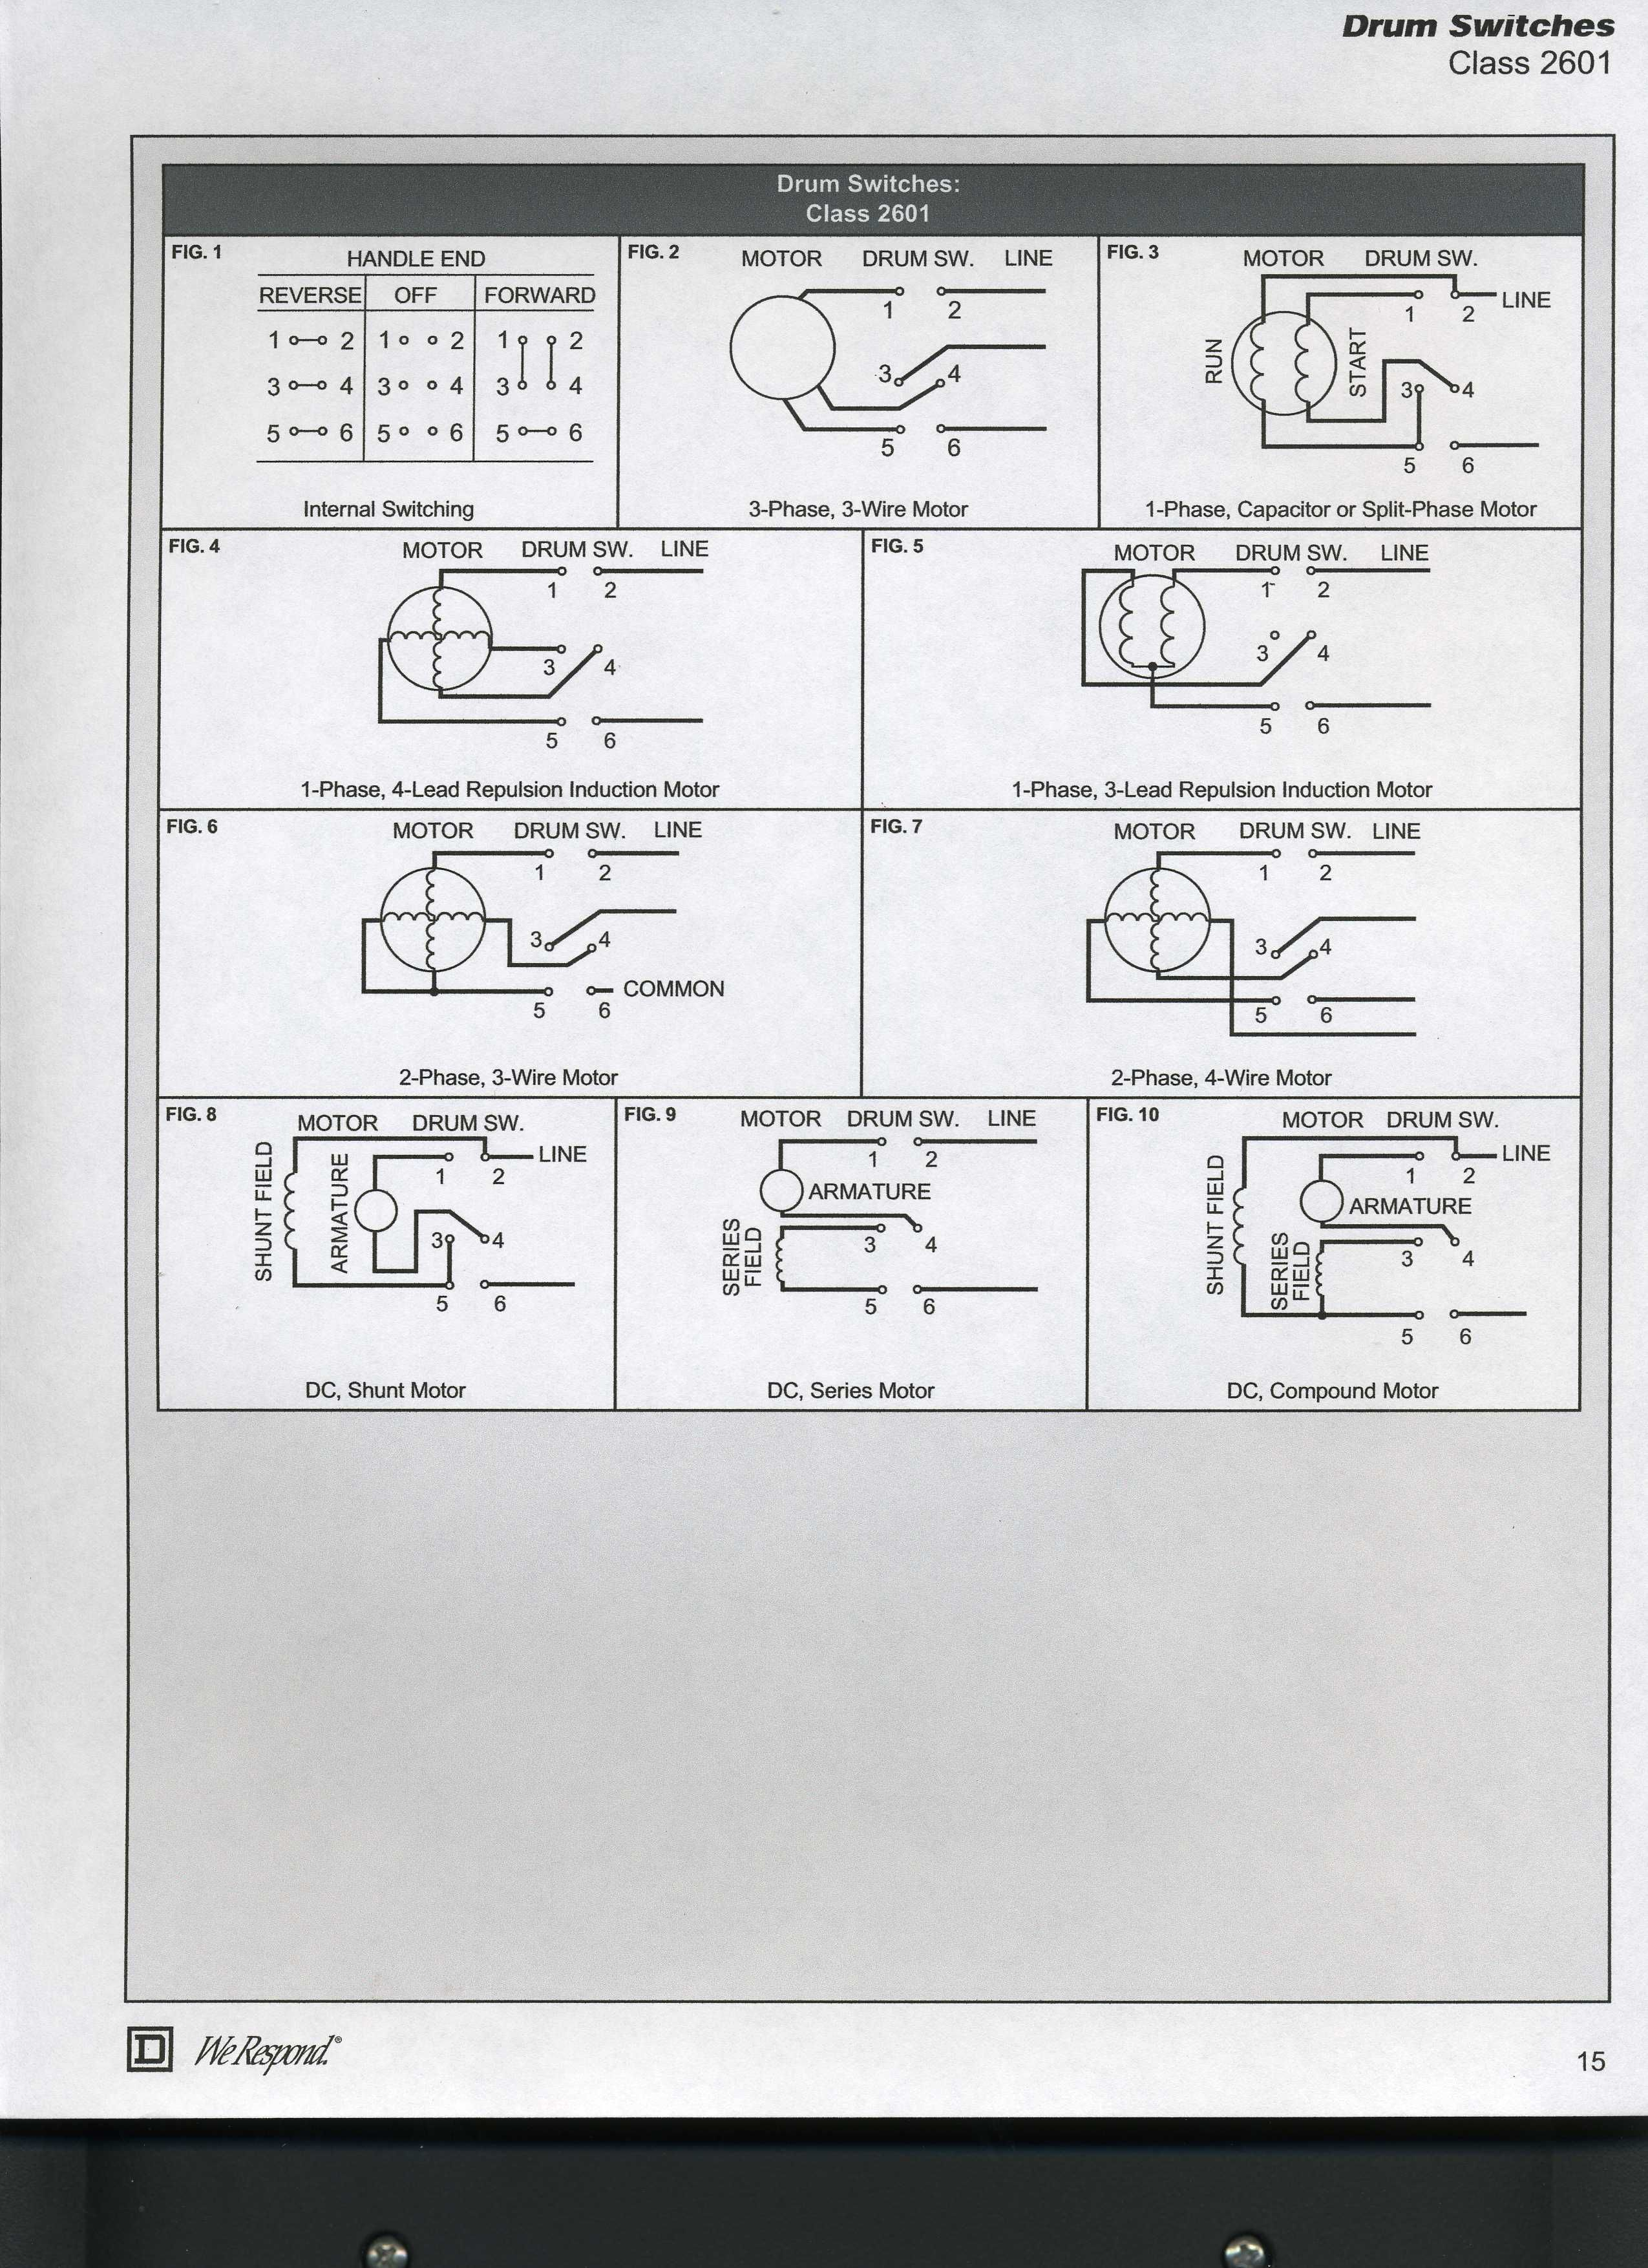 110 Volt Wiring Diagrams | Electric motor, Diagram, Electrical wiring  diagramPinterest